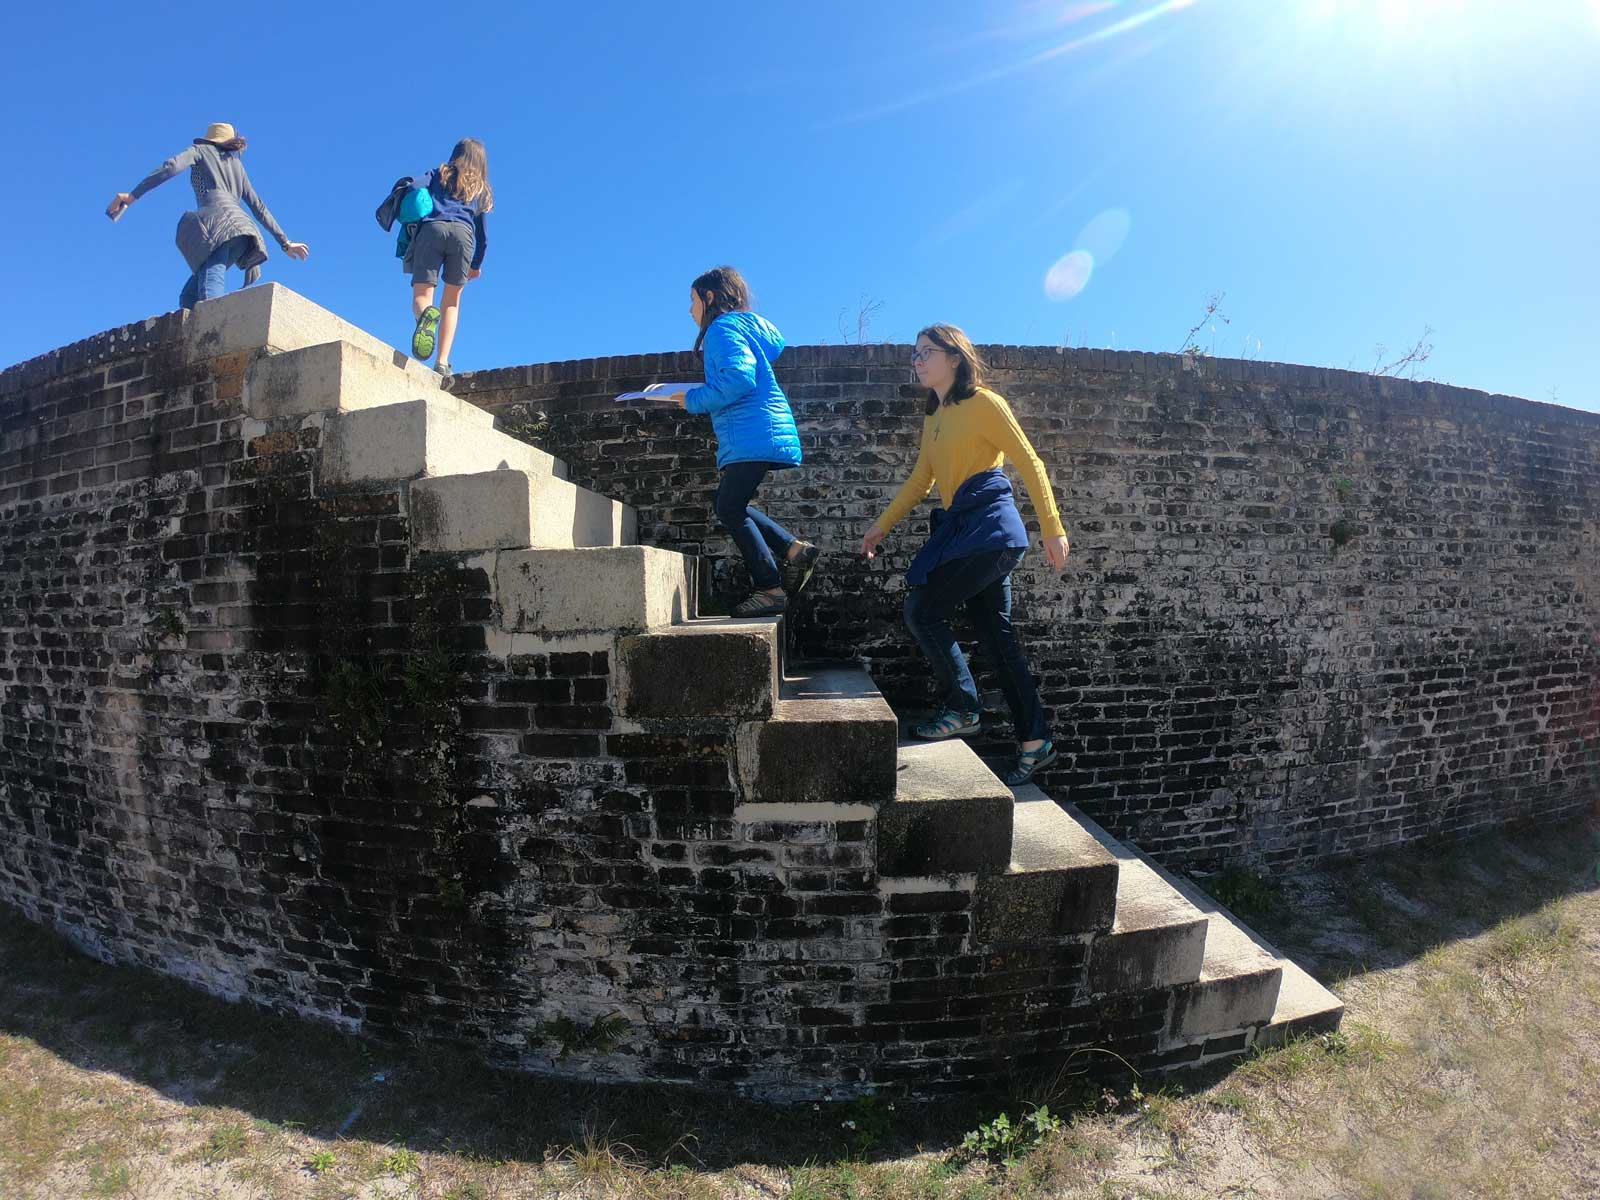 Four girls climbing stairs at Fort Pickens, Pensacola Beach, Florida